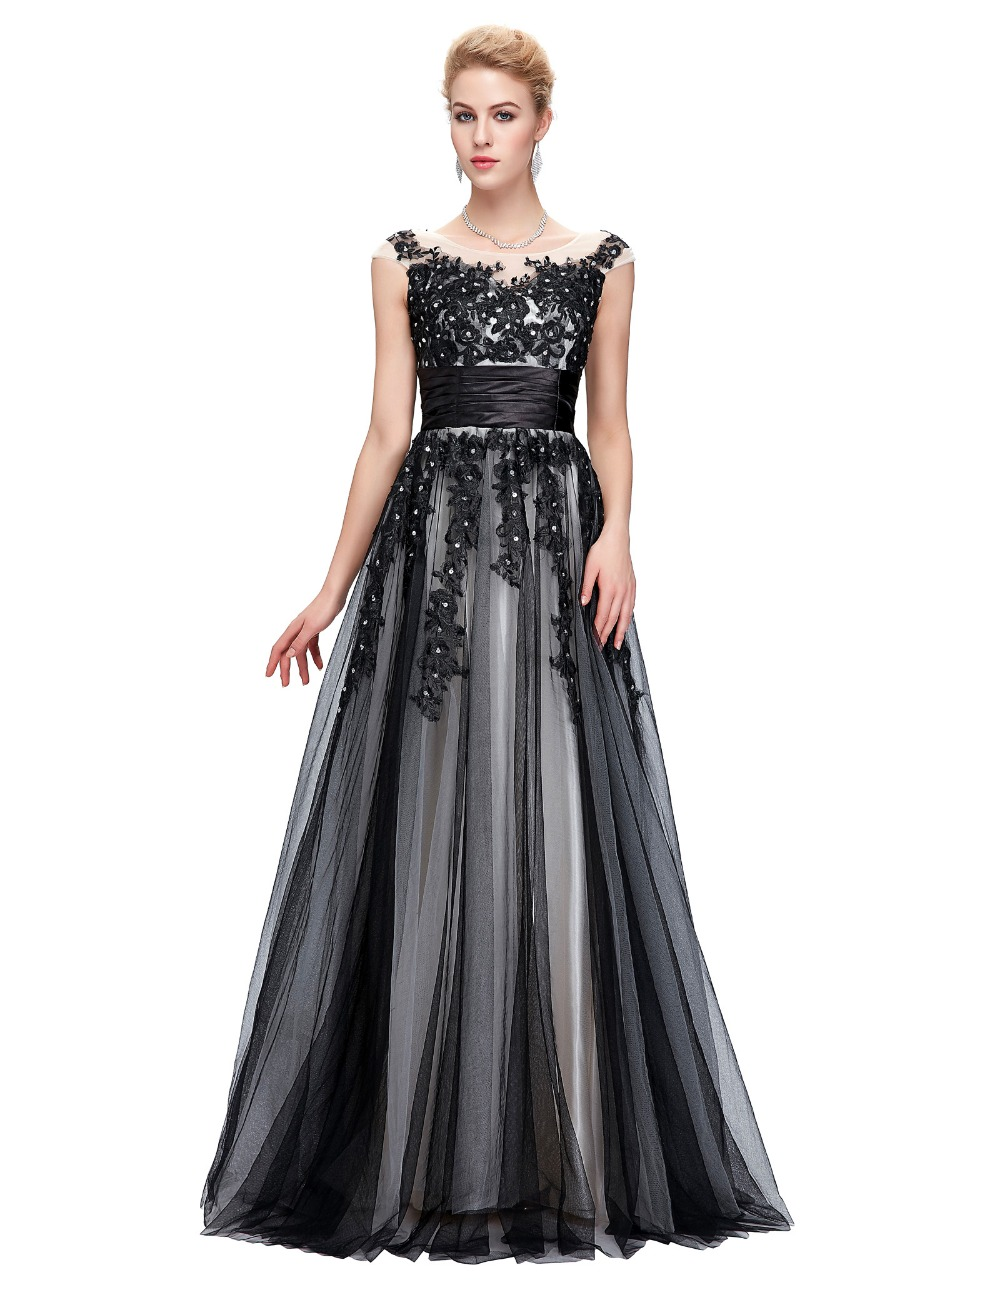 robe de soiree longue sexy lace applique evening dresses long ball gown luxury black evening. Black Bedroom Furniture Sets. Home Design Ideas